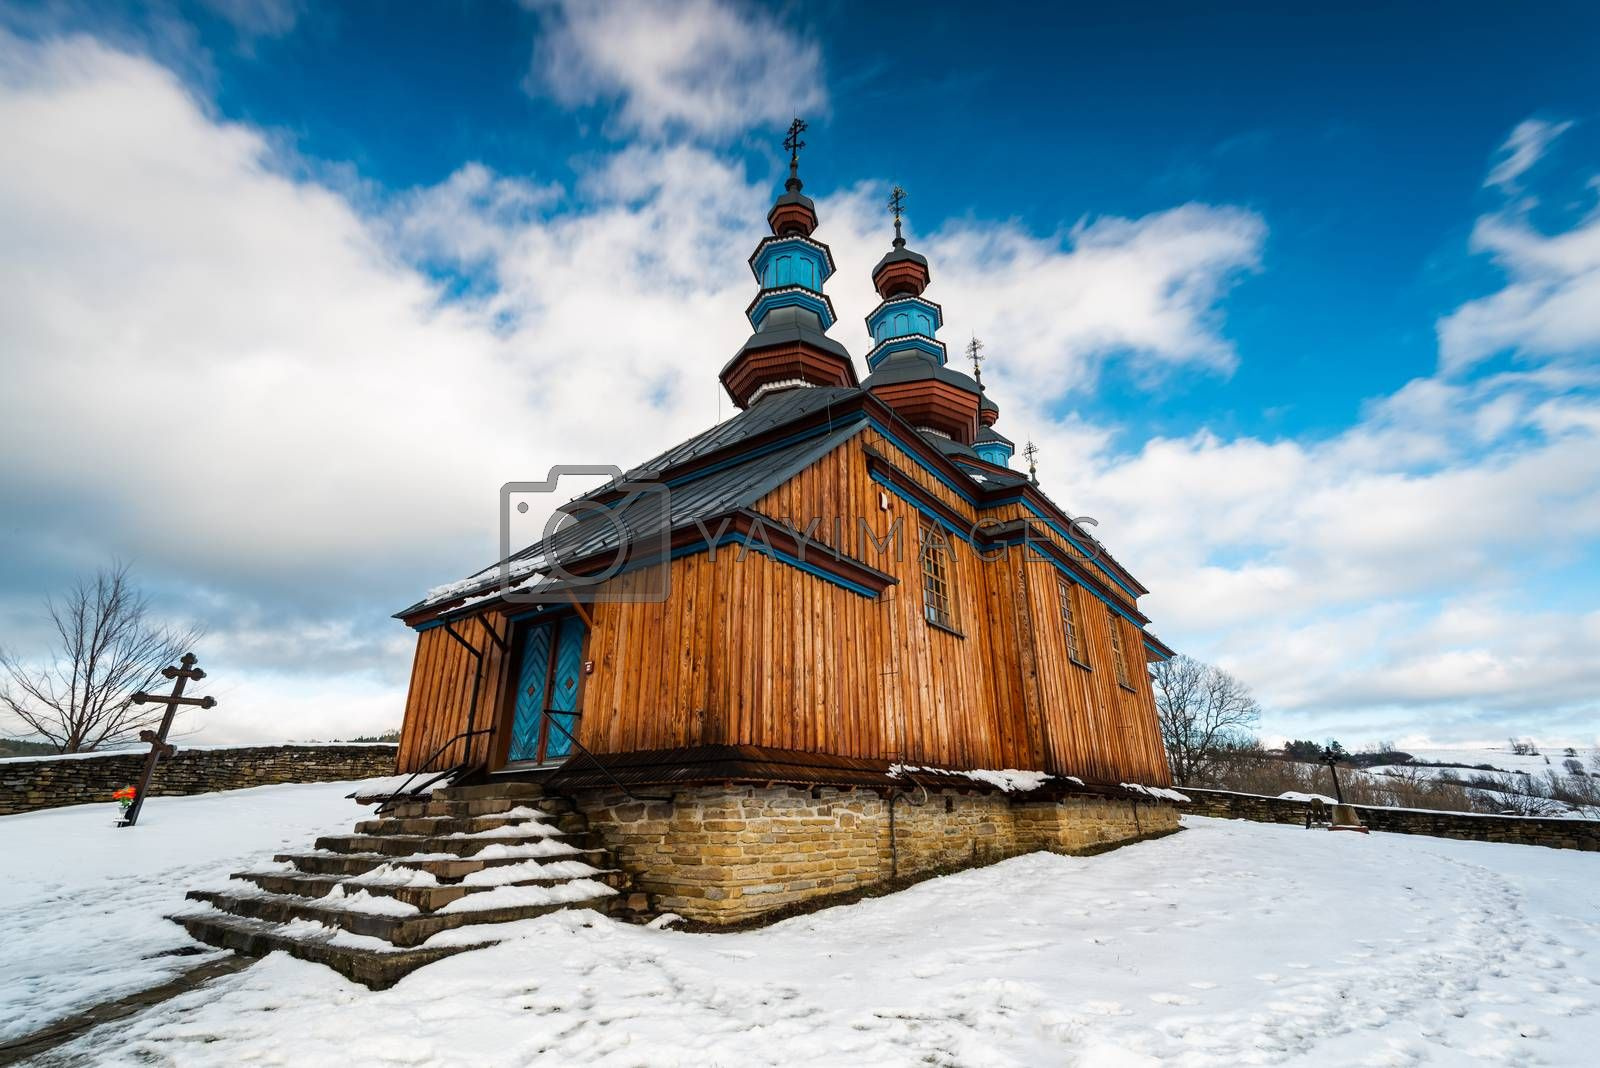 Exterior of Komancza Wooden Orthodox Church.  Bieszczady Archite by merc67